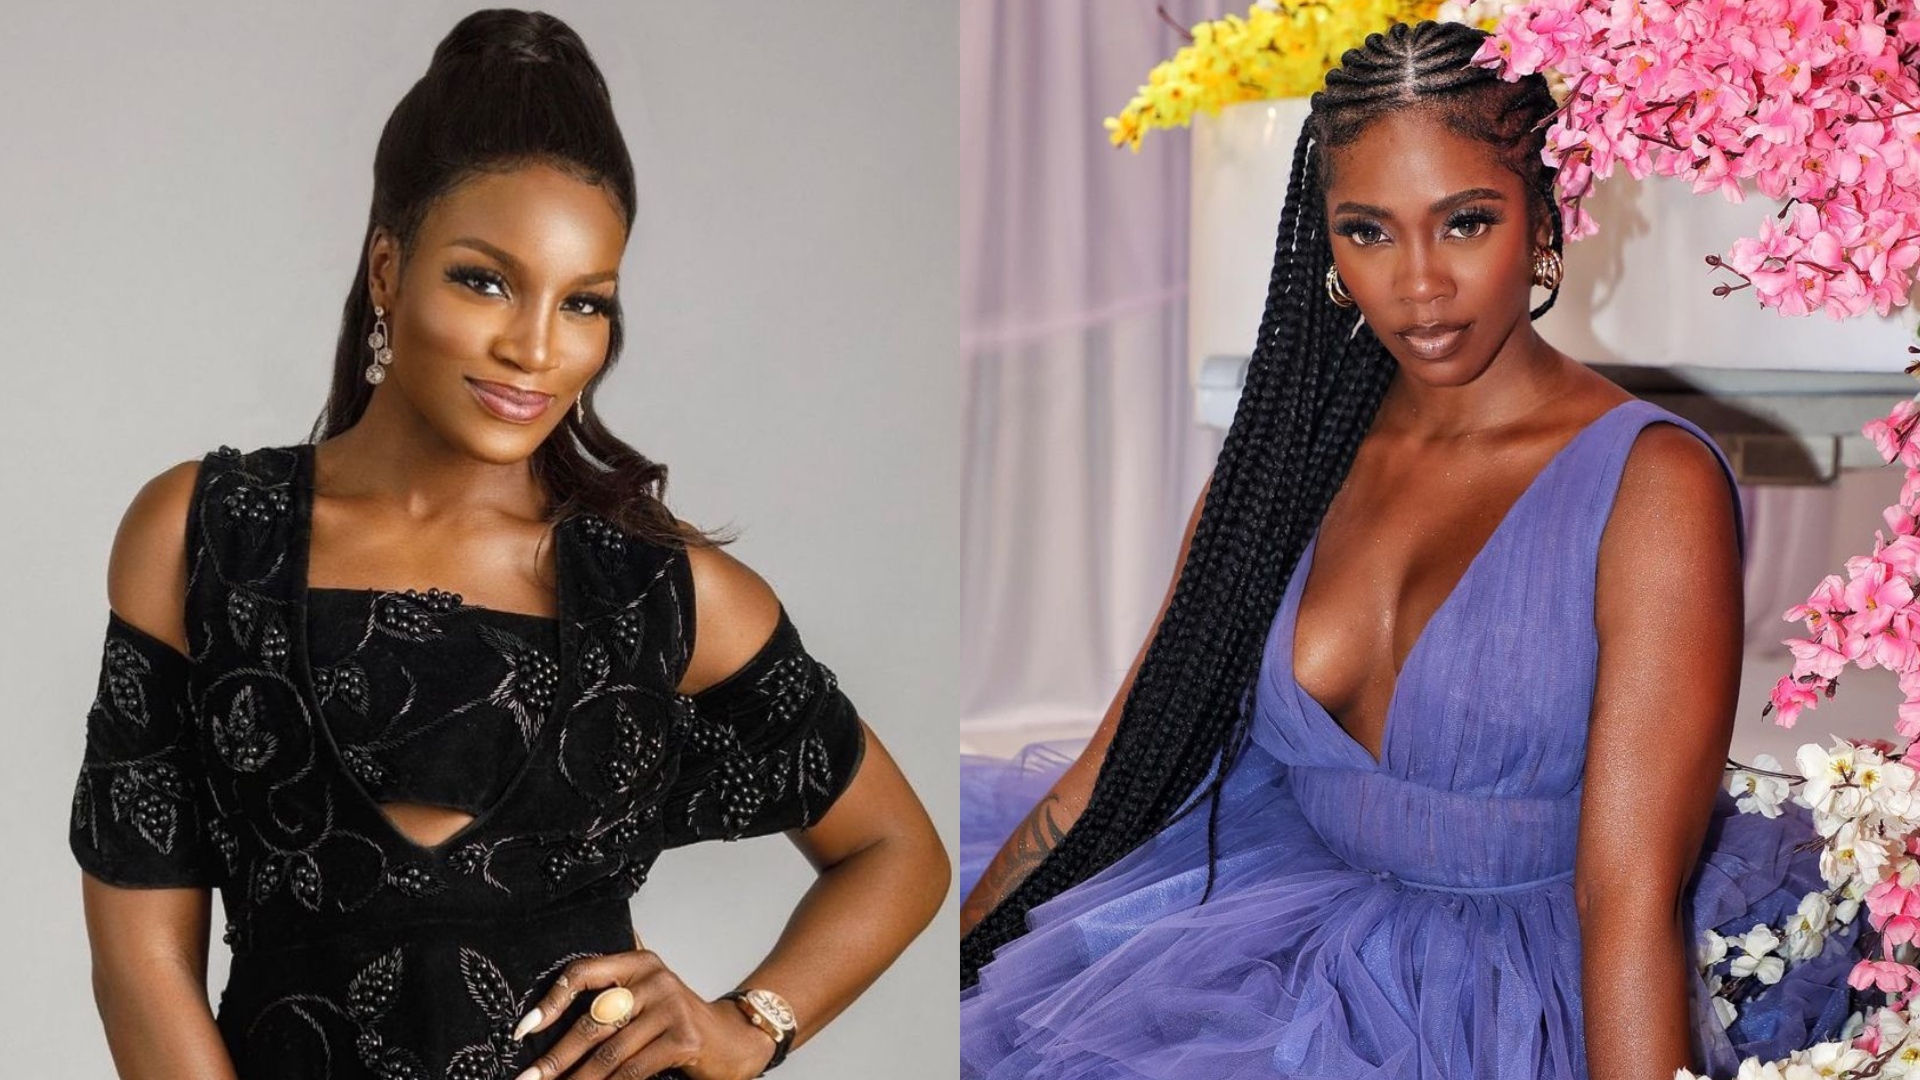 Tiwa Savage Cursed Me, Says I Will Never Have A Child – Seyi Shay Cries Out